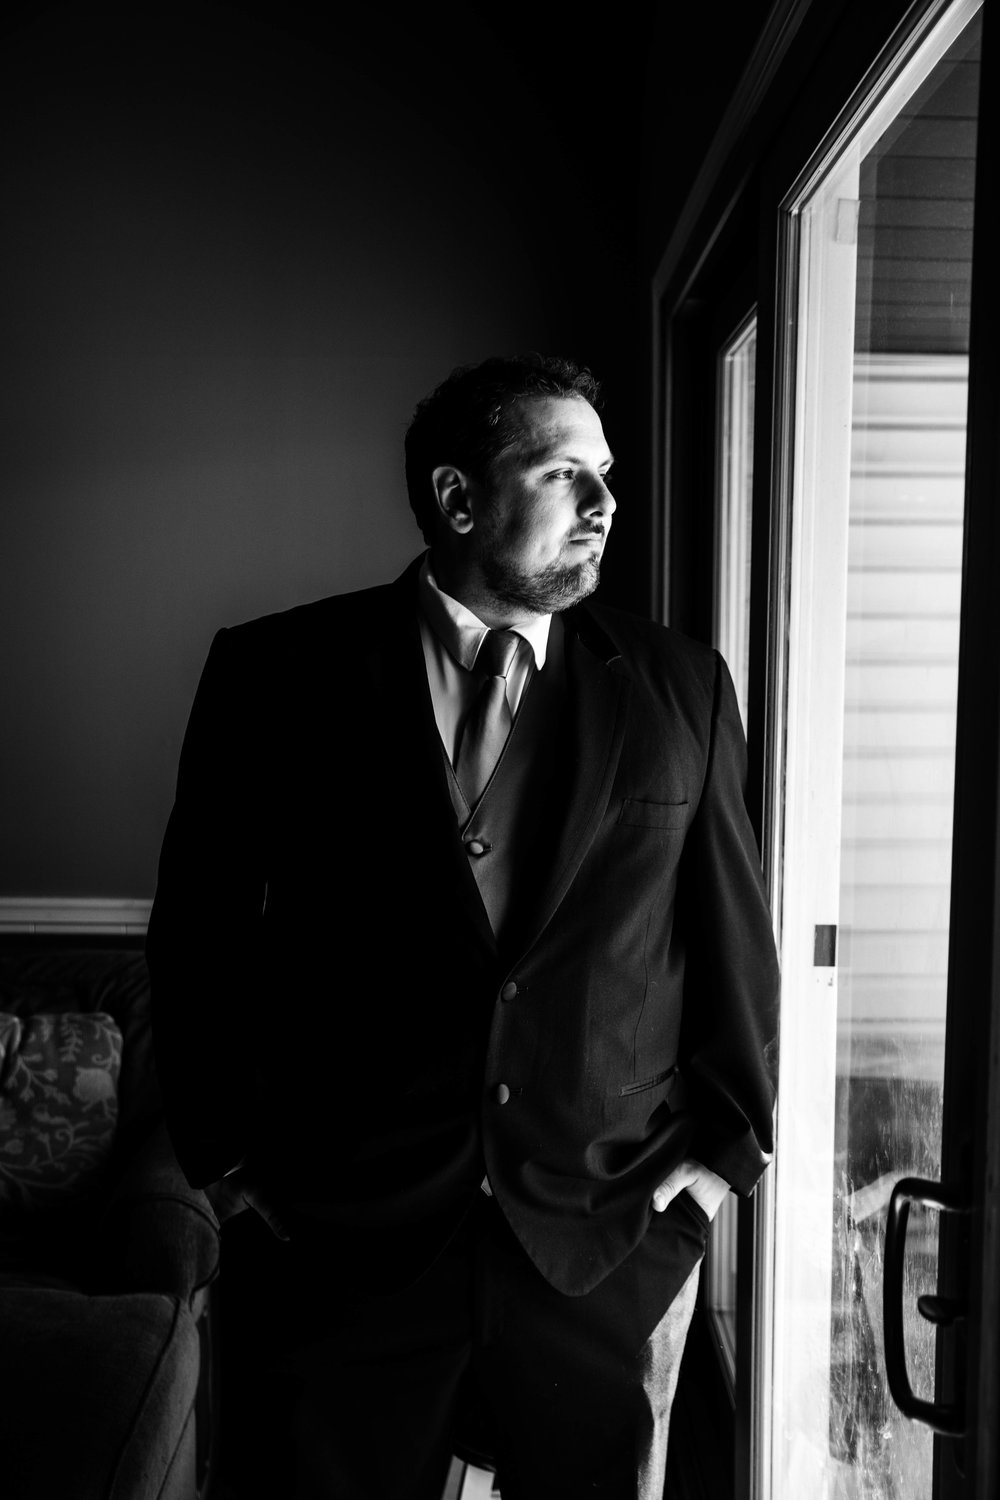 Kelly-Wedding-159.jpg